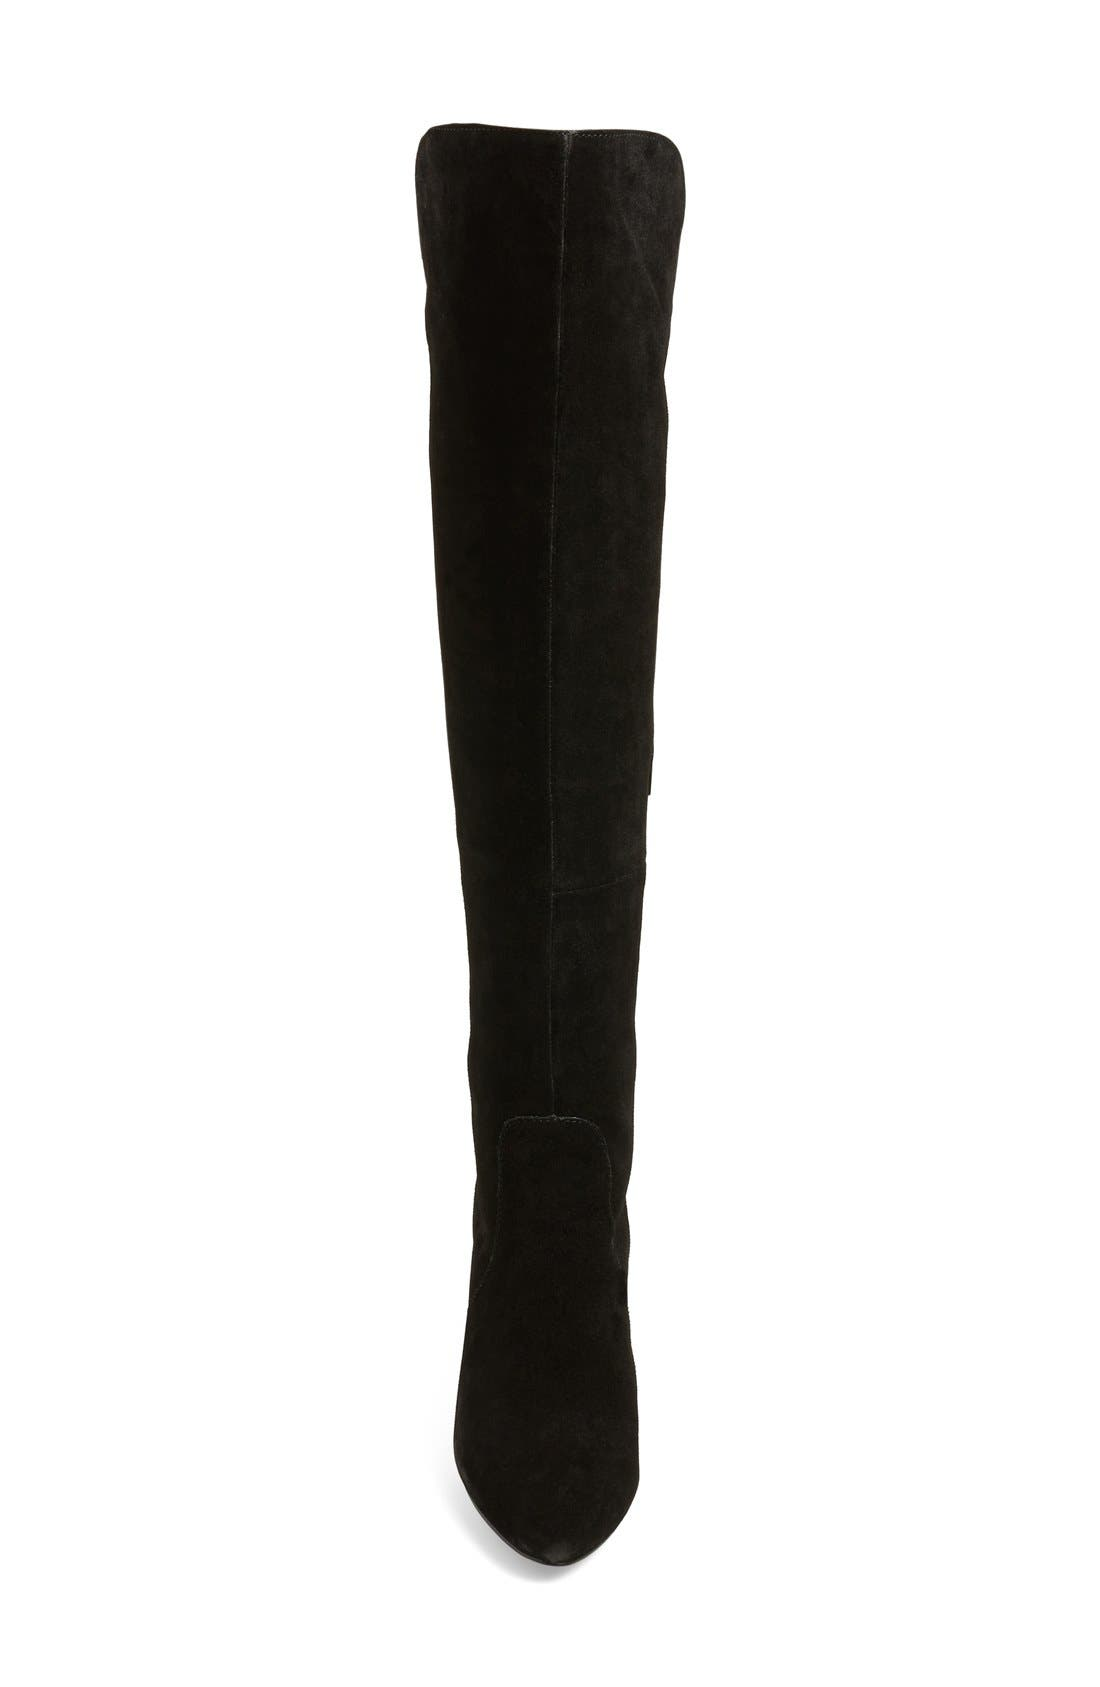 CHARLES BY CHARLES DAVID, 'Edie' Over the Knee Boot, Alternate thumbnail 3, color, 002